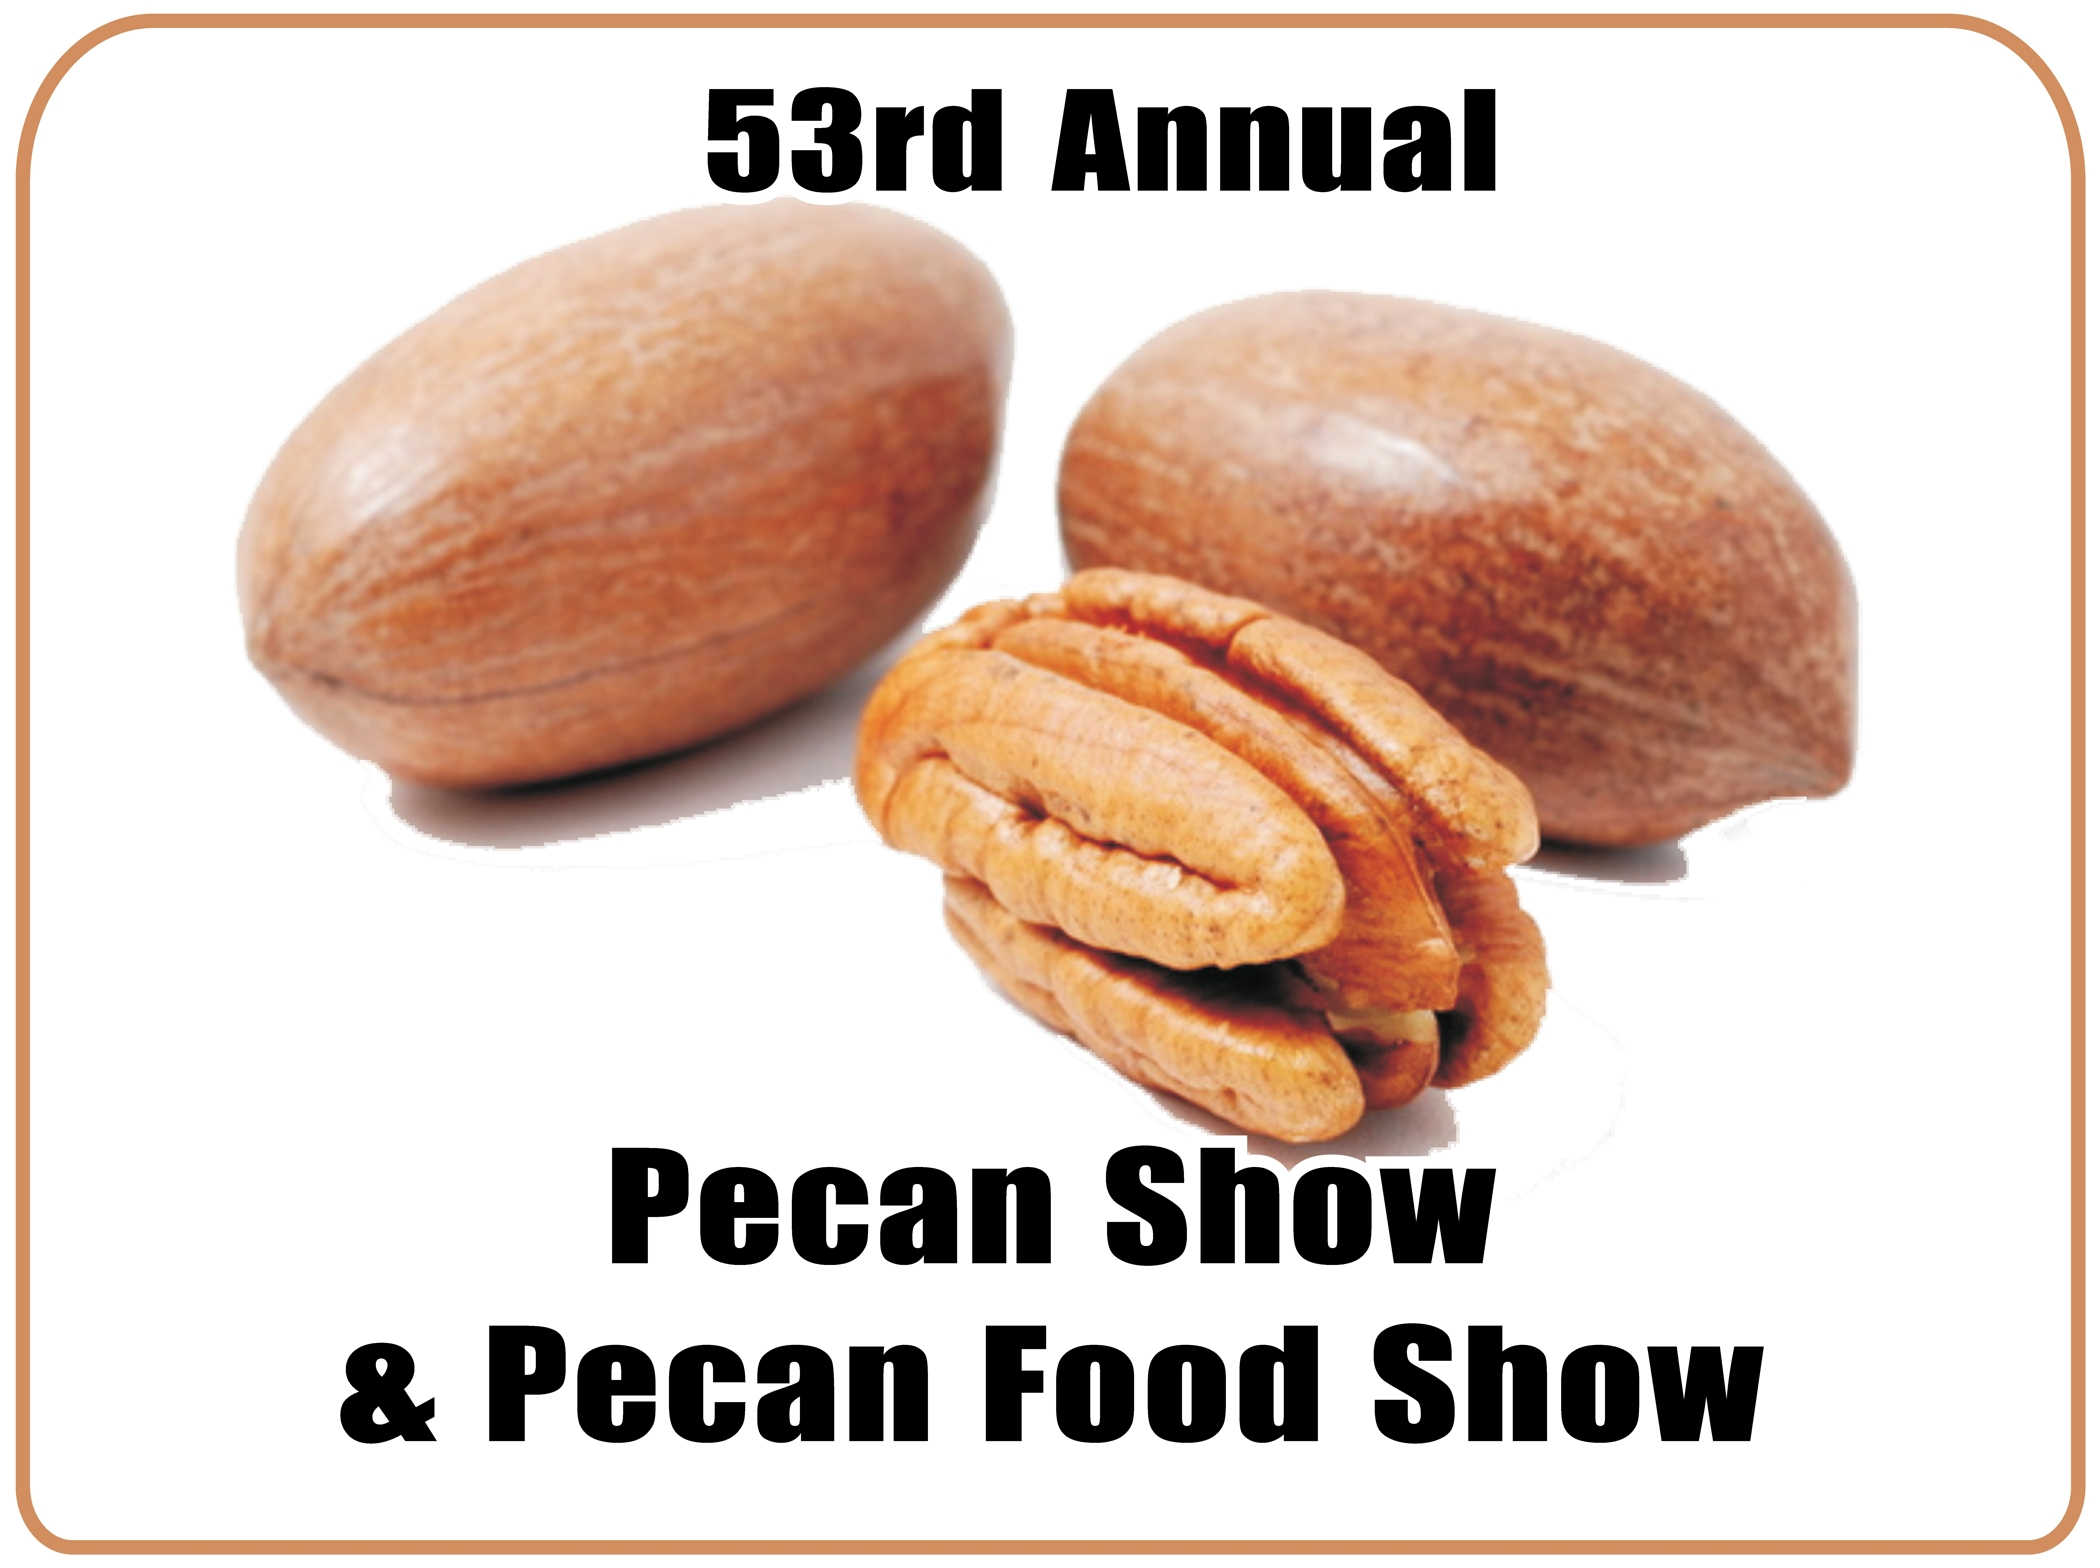 53rd 20annual 20dewitt 20county 20pecan 20show 202015